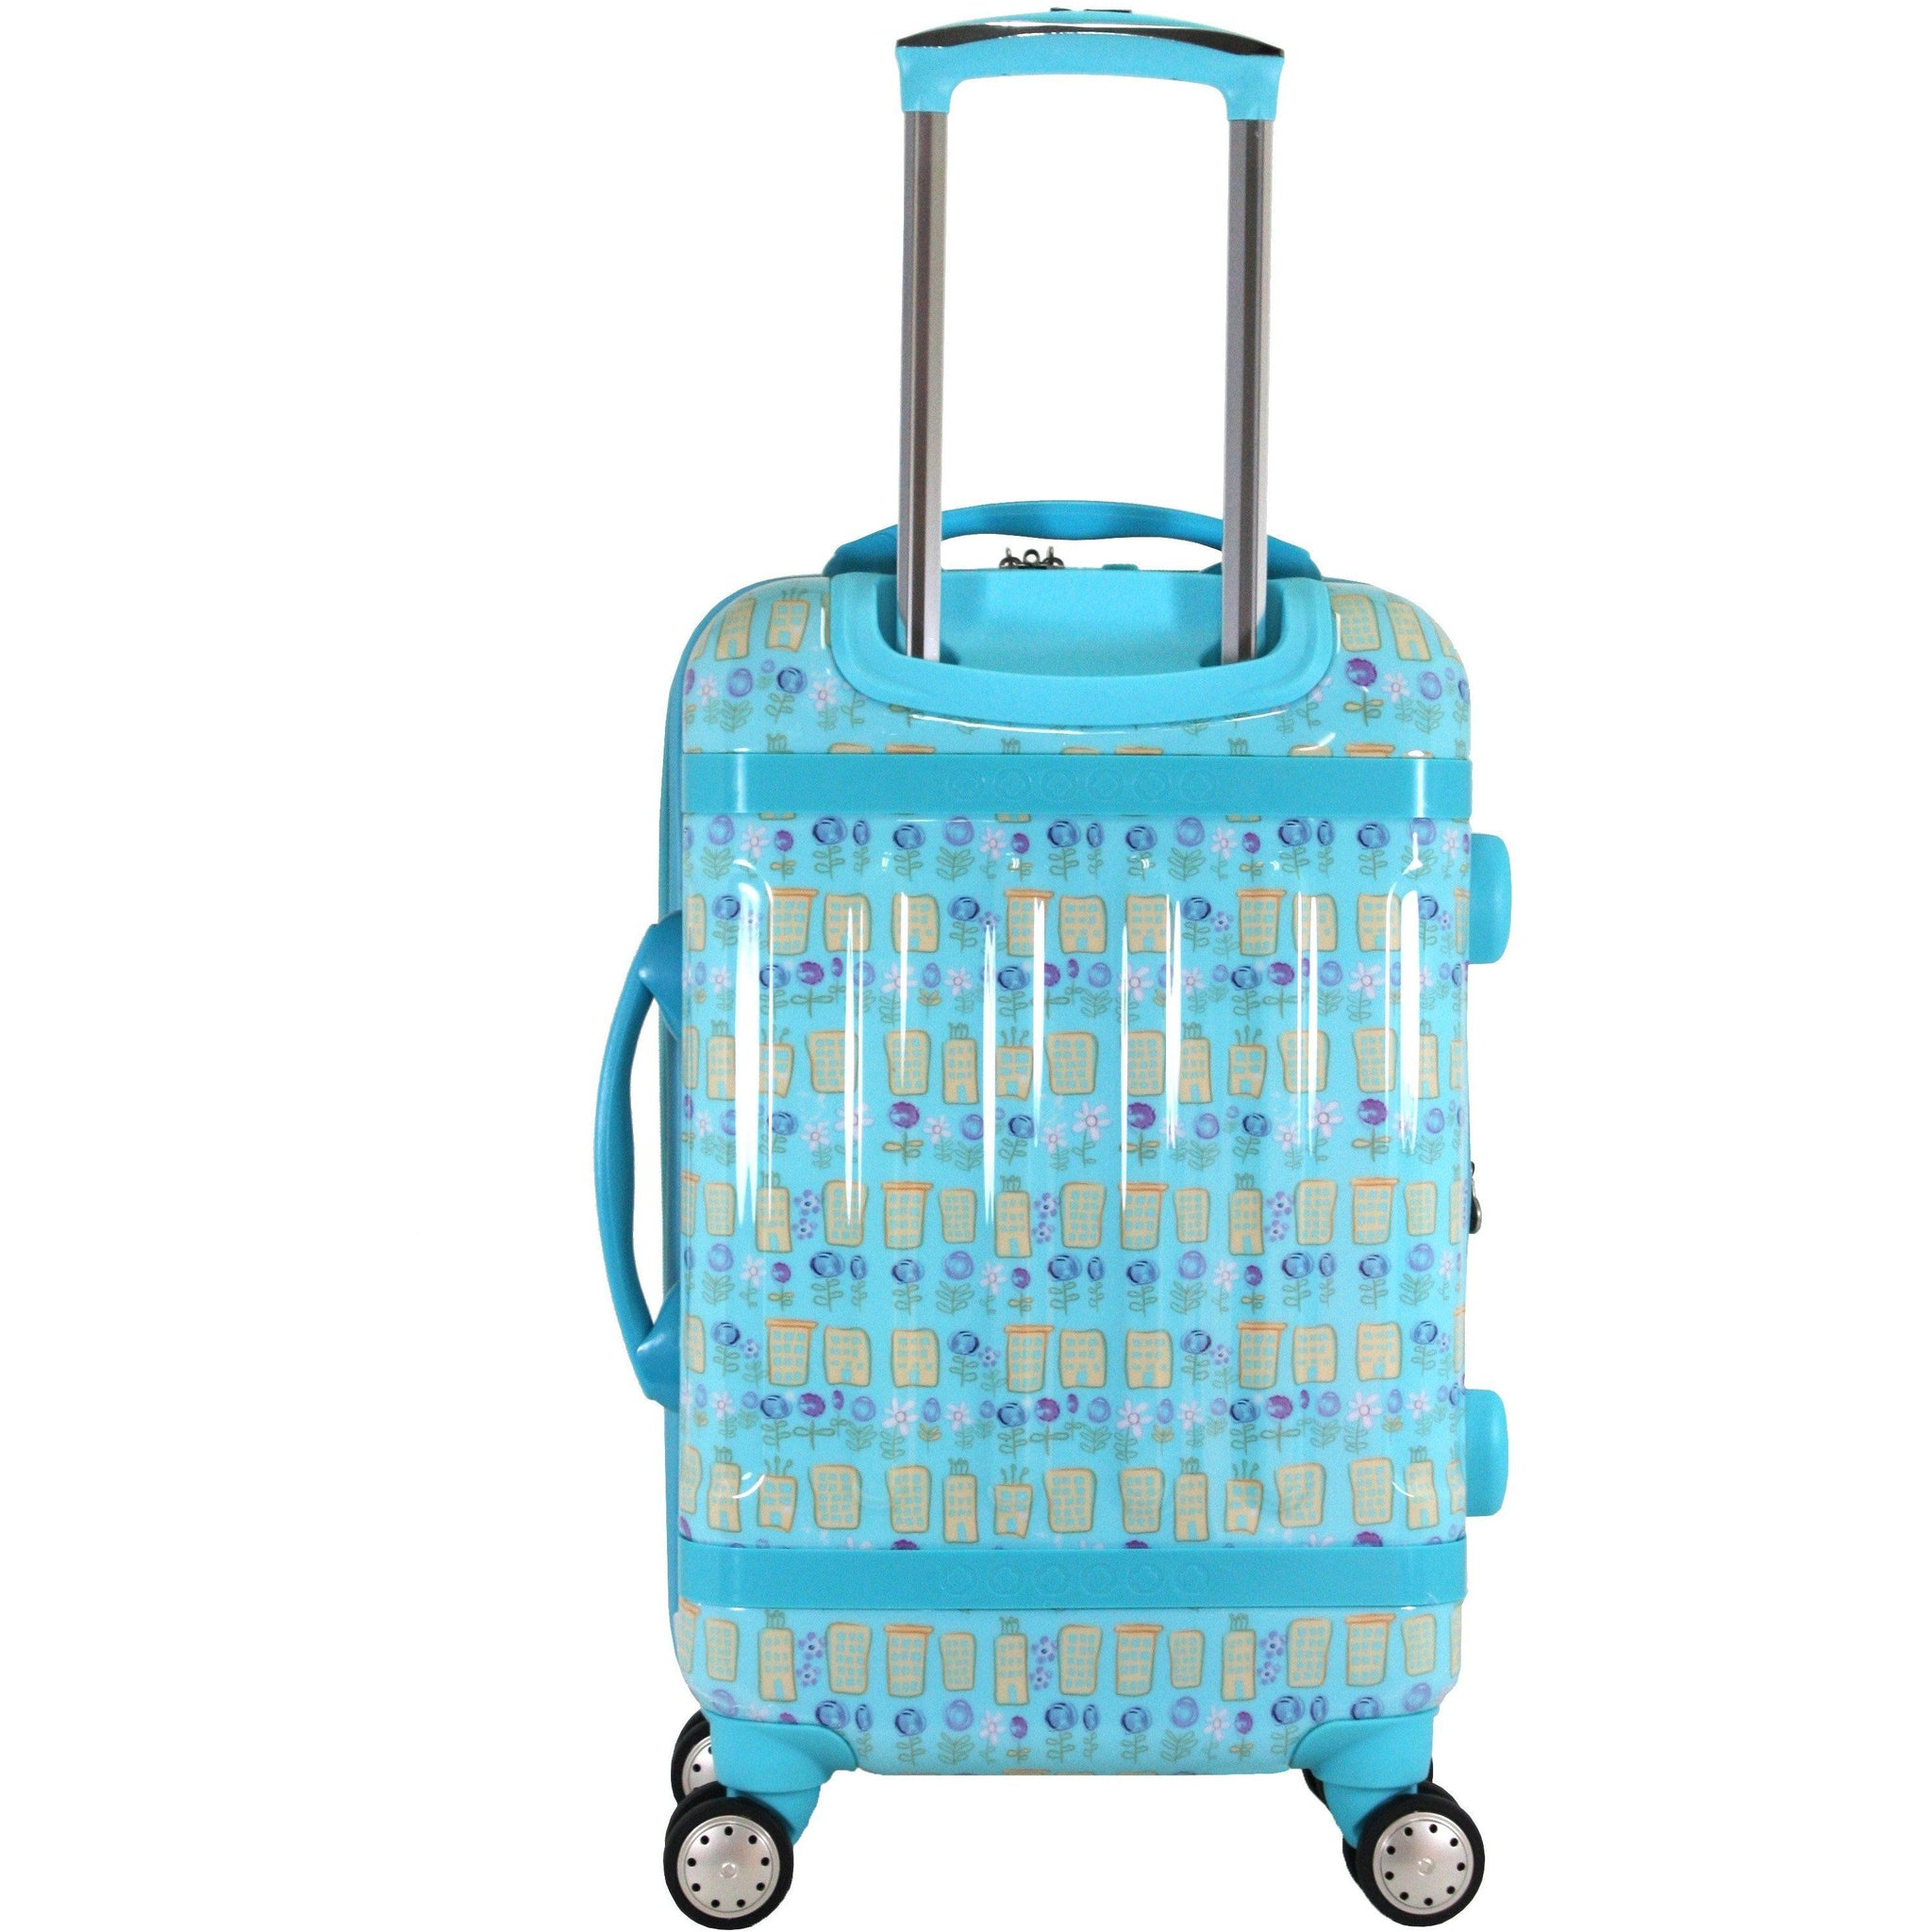 f1078a843684 Strong Suitcases-Vegan Luggage-J World New York TAQOO Polycarbonate ...